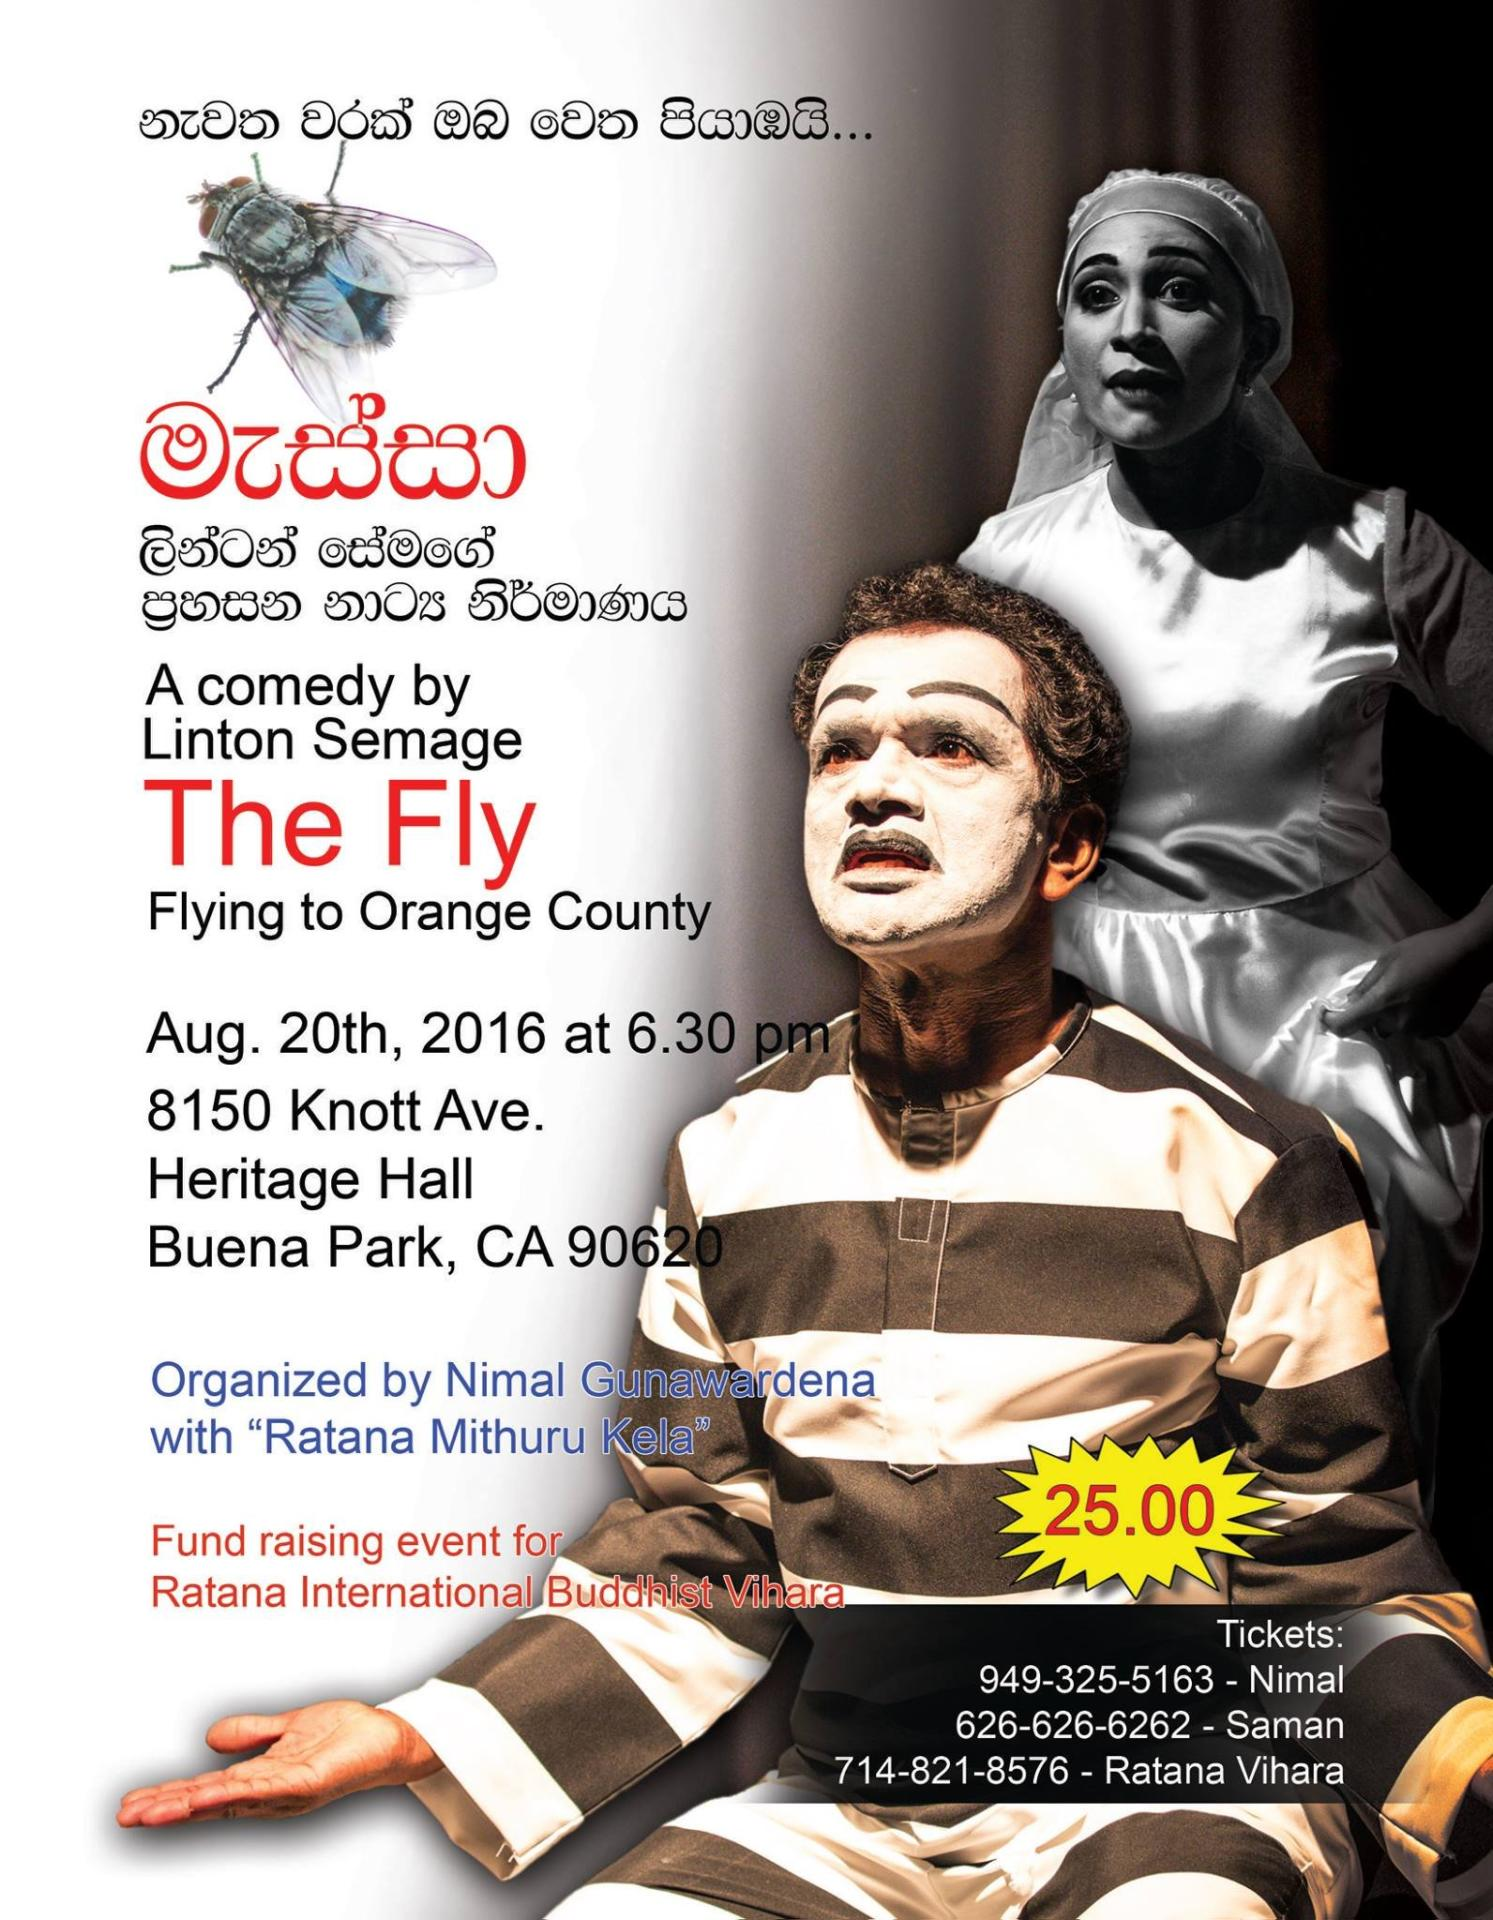 The Fly - A comedy by Linton Semage